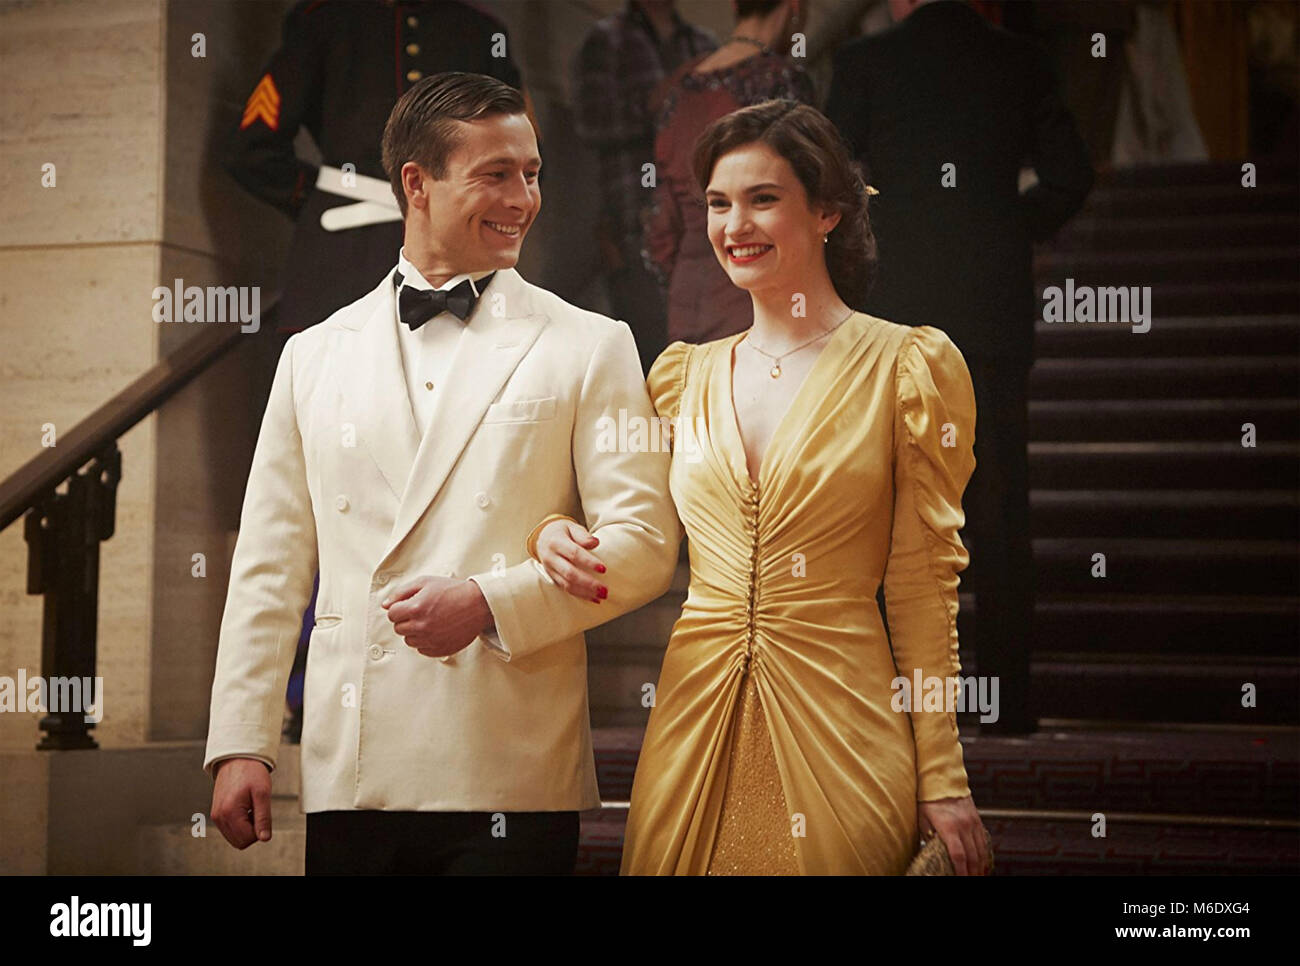 The guernsey literary and potato peel pie society 2018 blueprint the guernsey literary and potato peel pie society 2018 blueprint pictures film with lily james and glen powell malvernweather Image collections